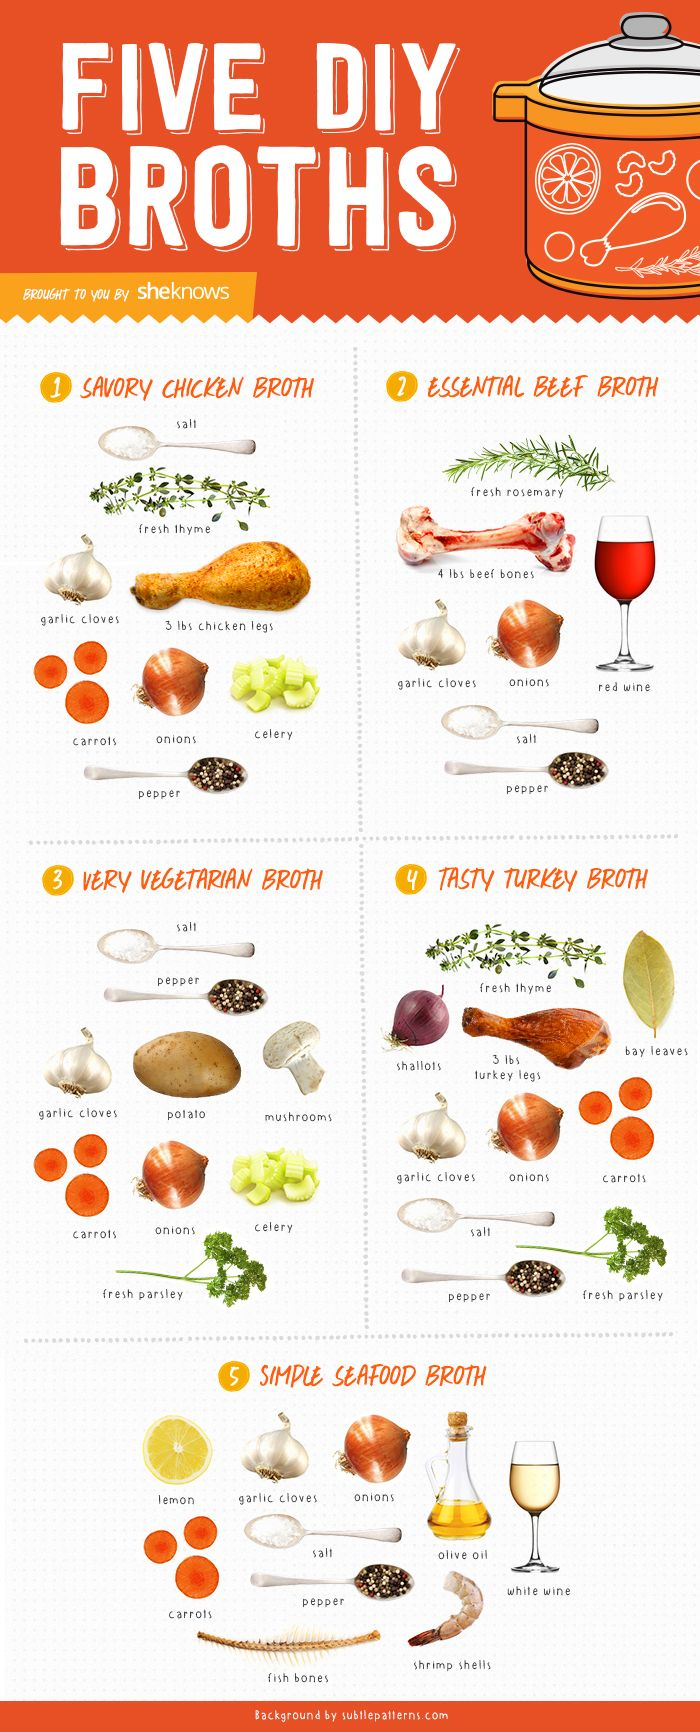 5 Easy DIY broths for your new favorite soup (Infographic)